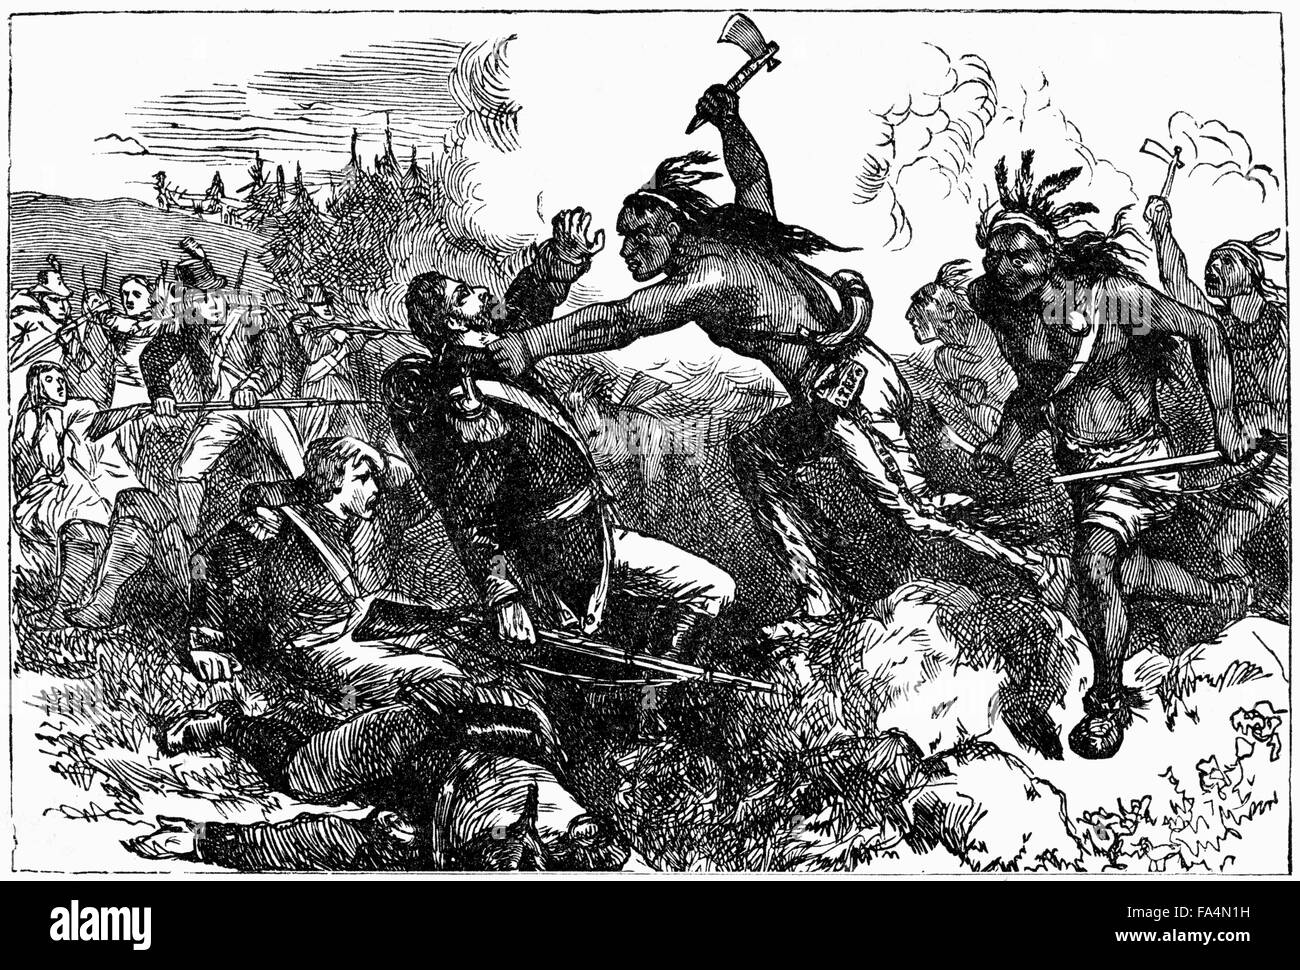 """""""Destruction of the Garrison at Wyoming"""", Wyoming Valley, Pennsylvania, Battle between American Patriots and Loyalists - Stock Image"""